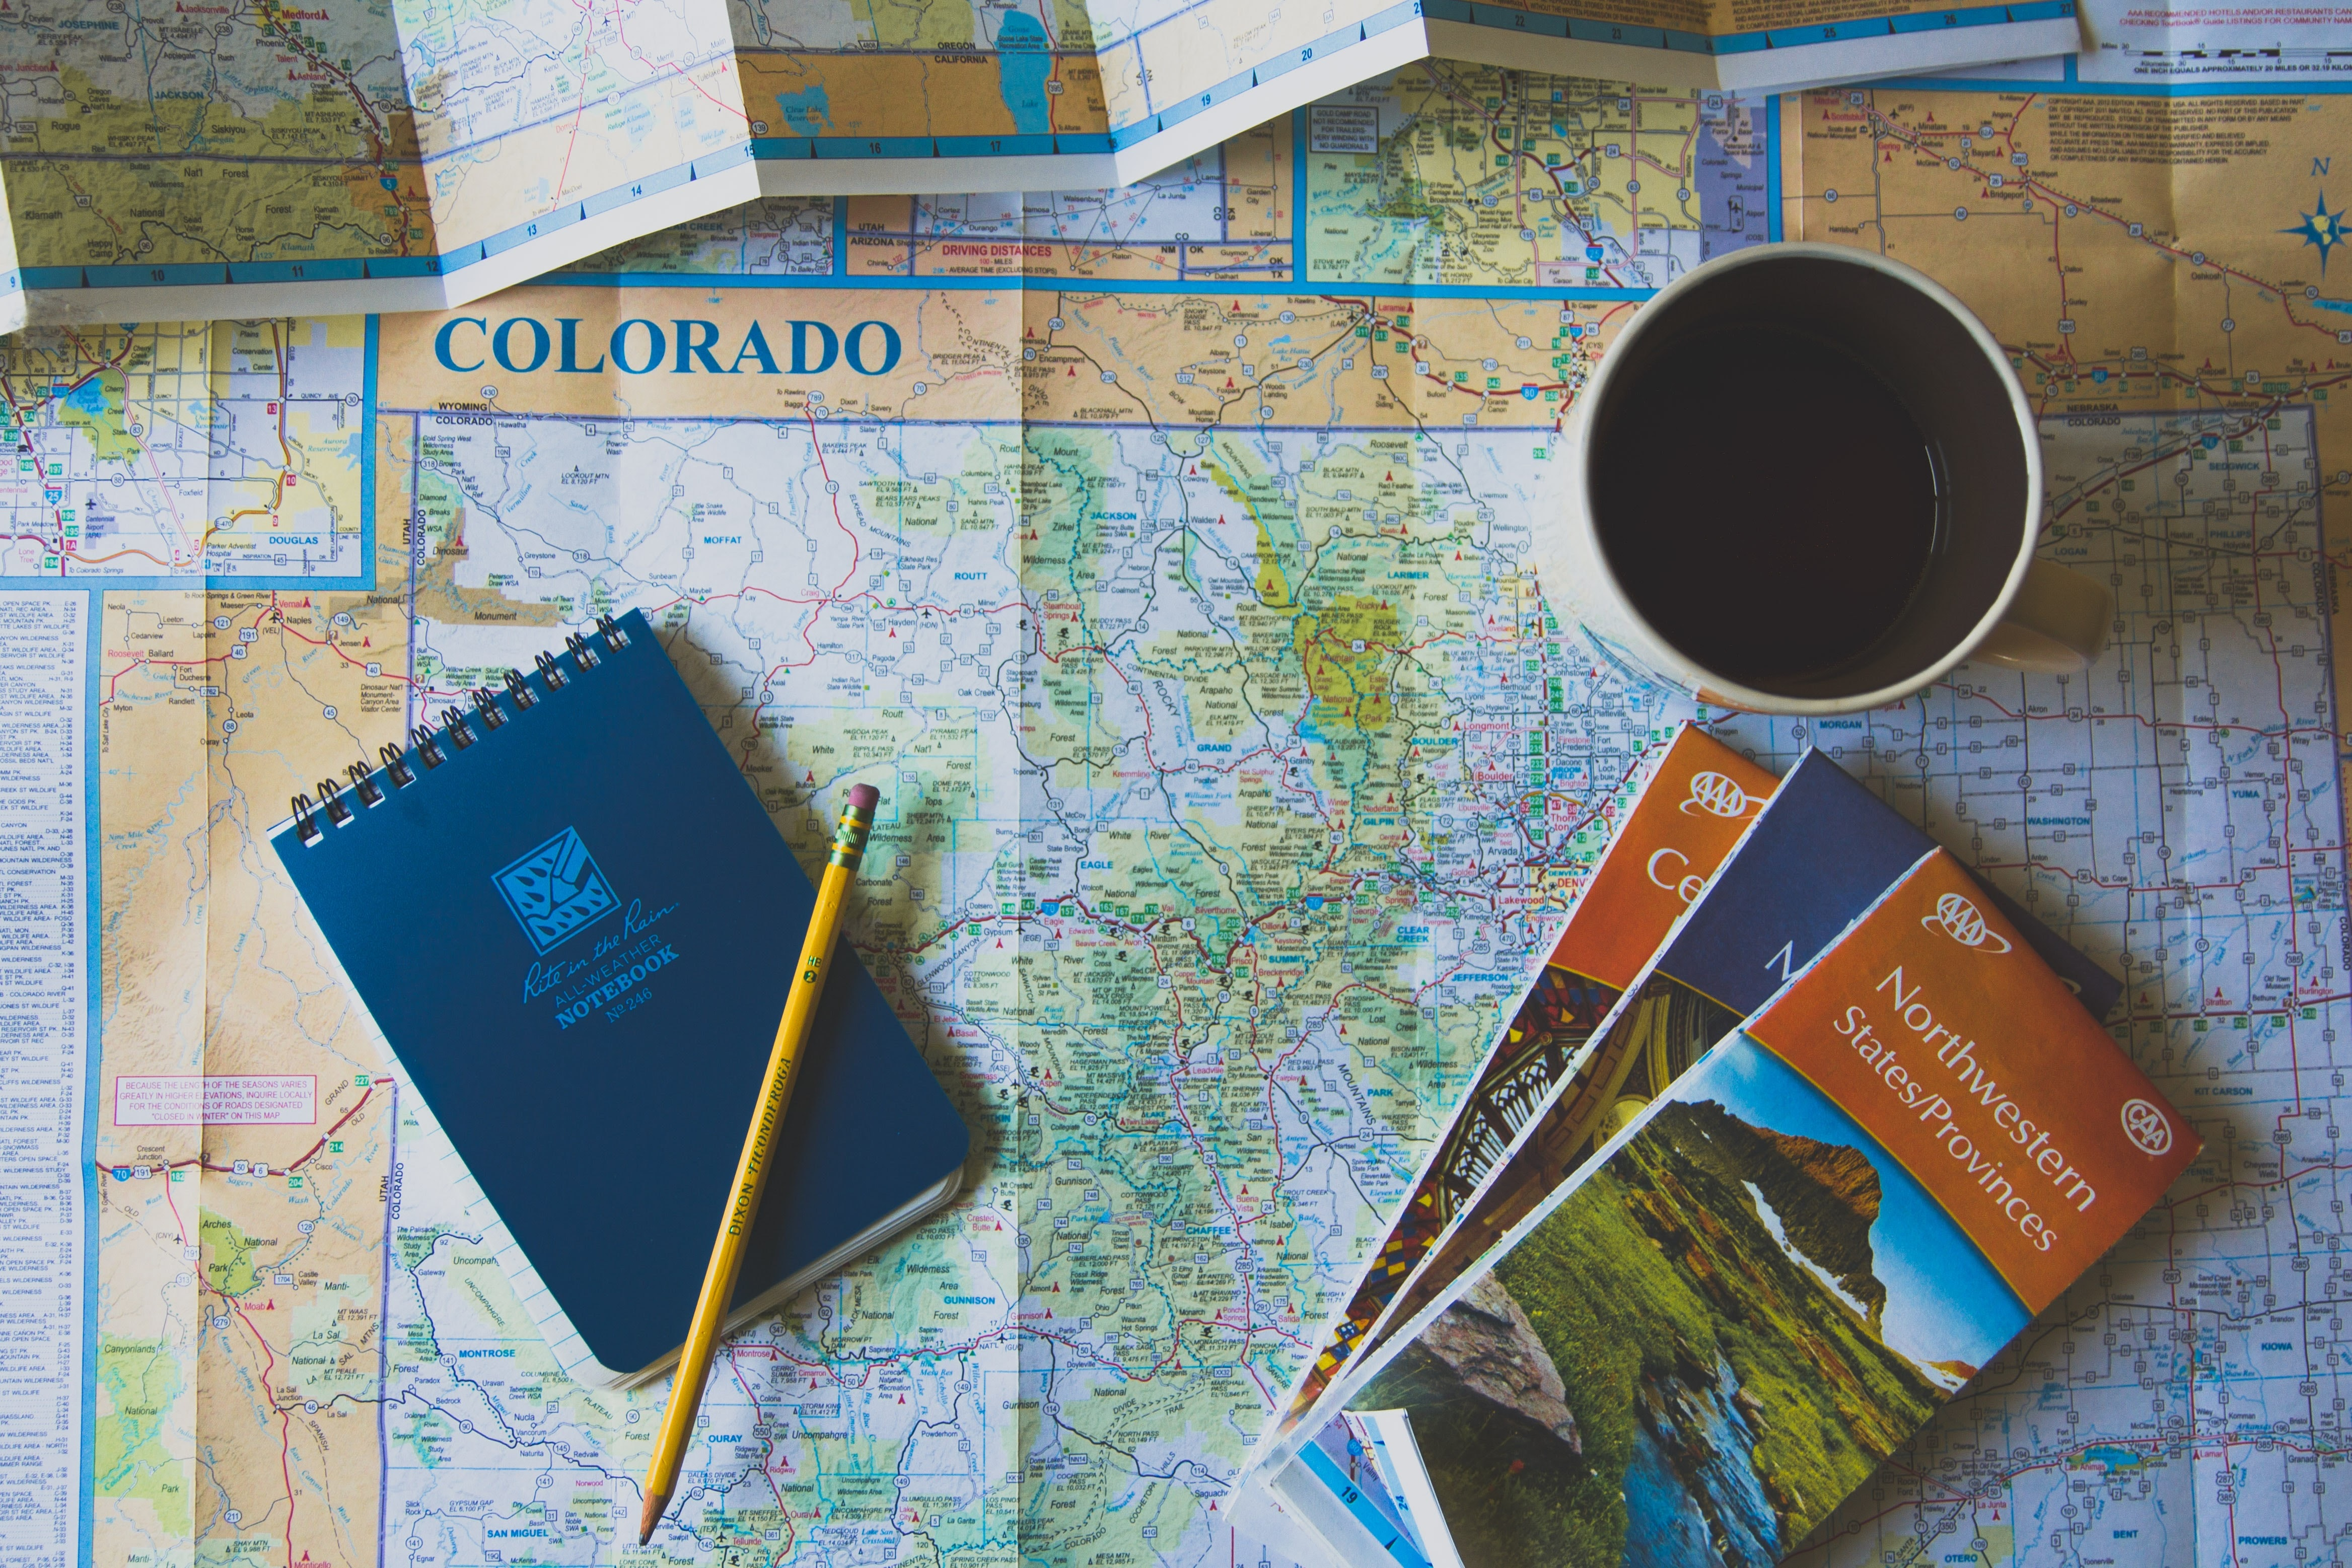 Rite in the Rain notebook, coffee, pencil, and three atlases sit on a map of Colorado